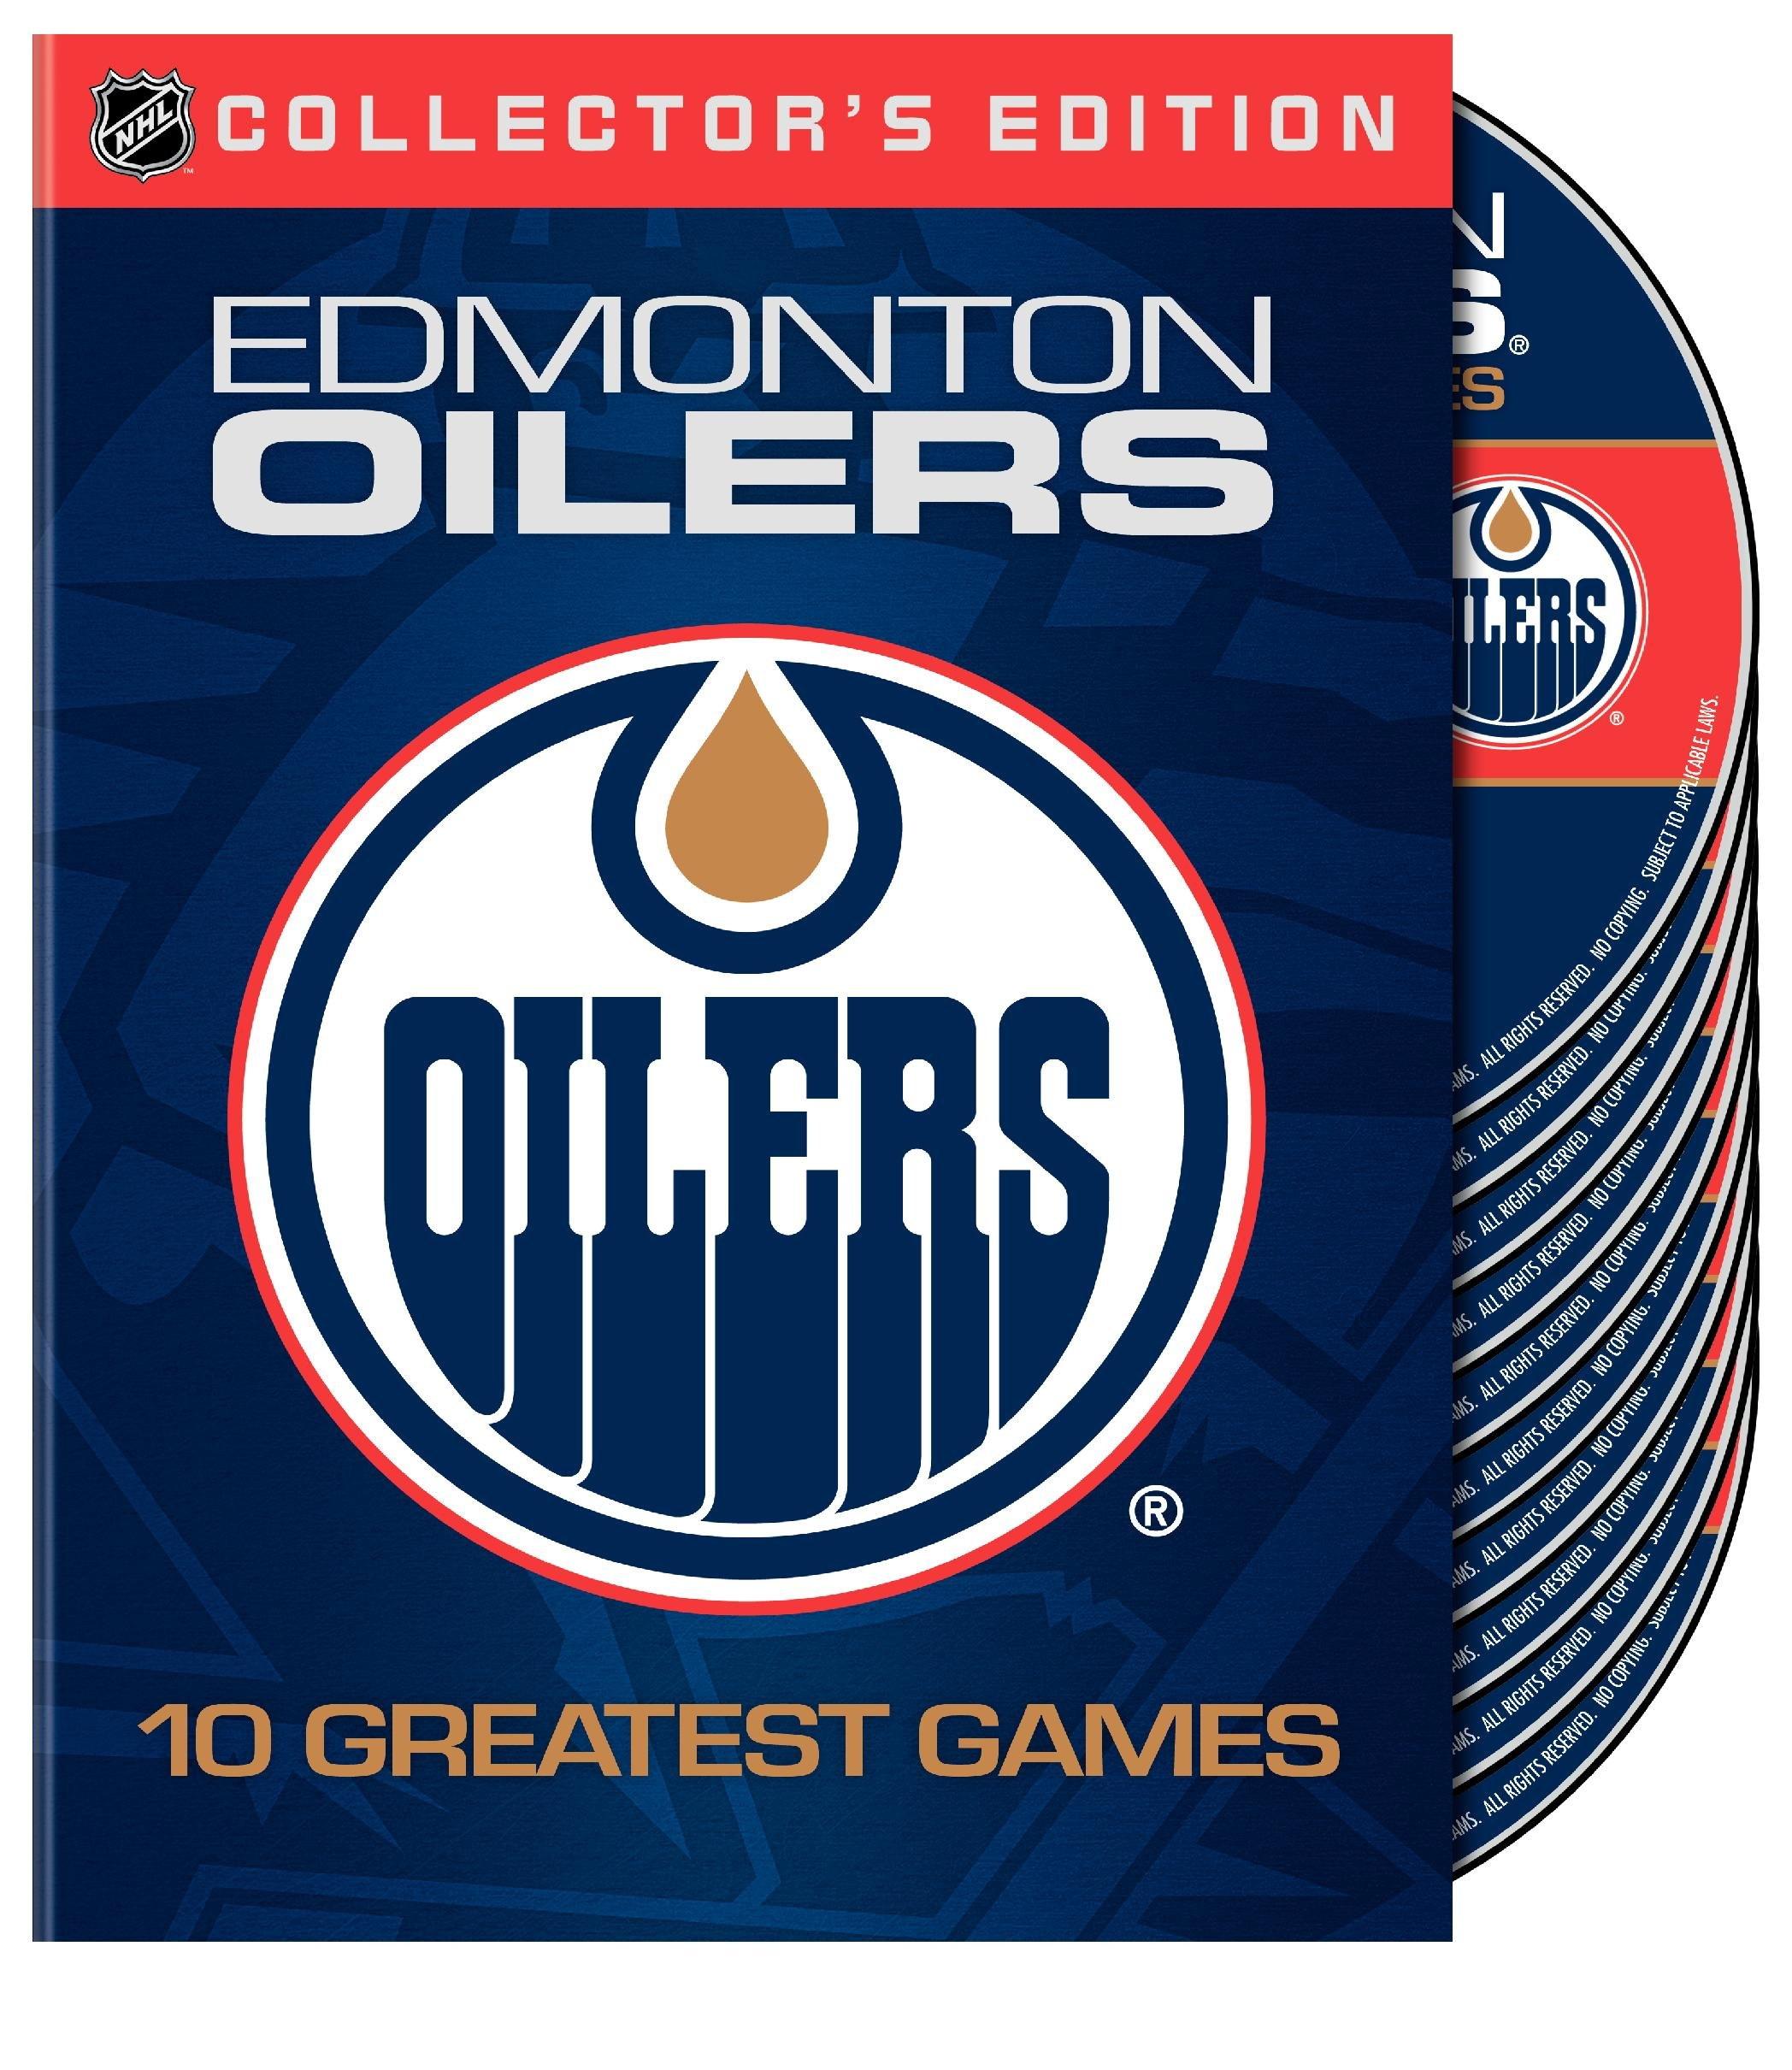 NHL: Edmonton Oilers 10 Greatest Games